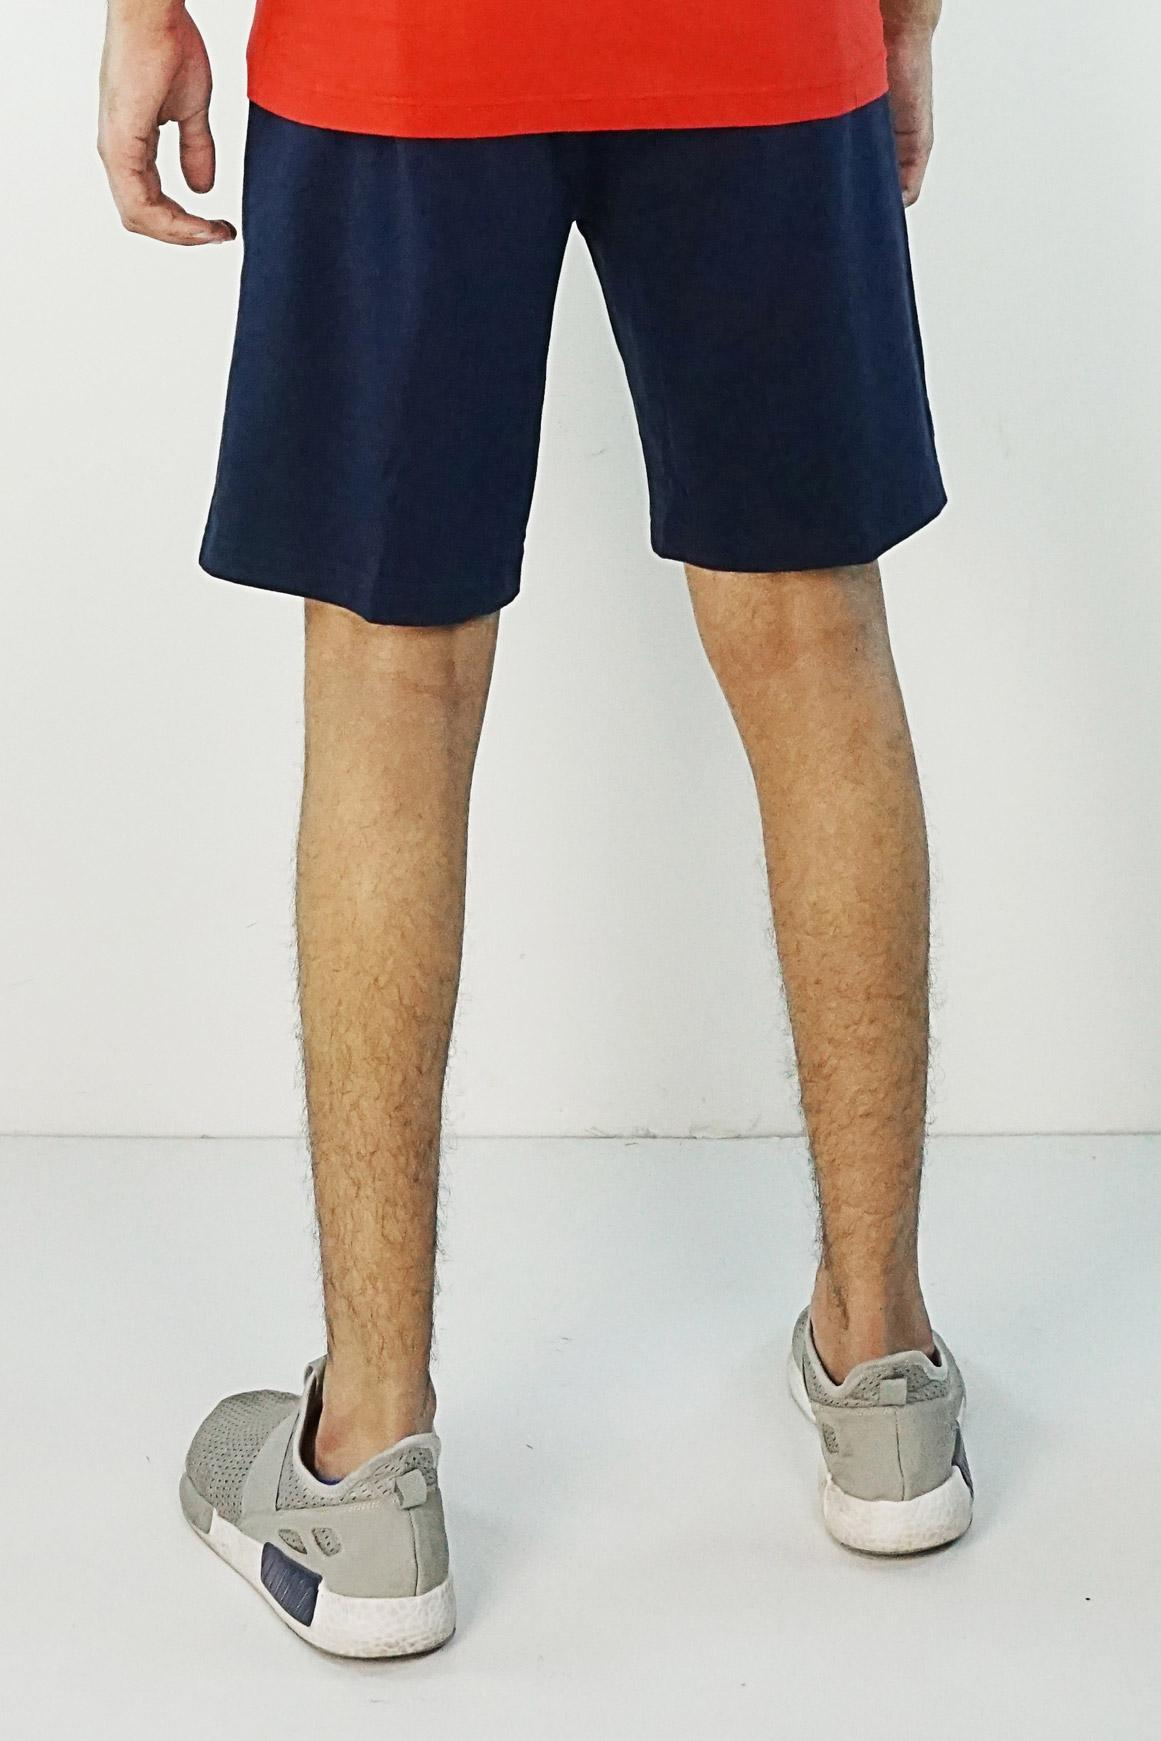 Short Lounge Pants - FP65004-33